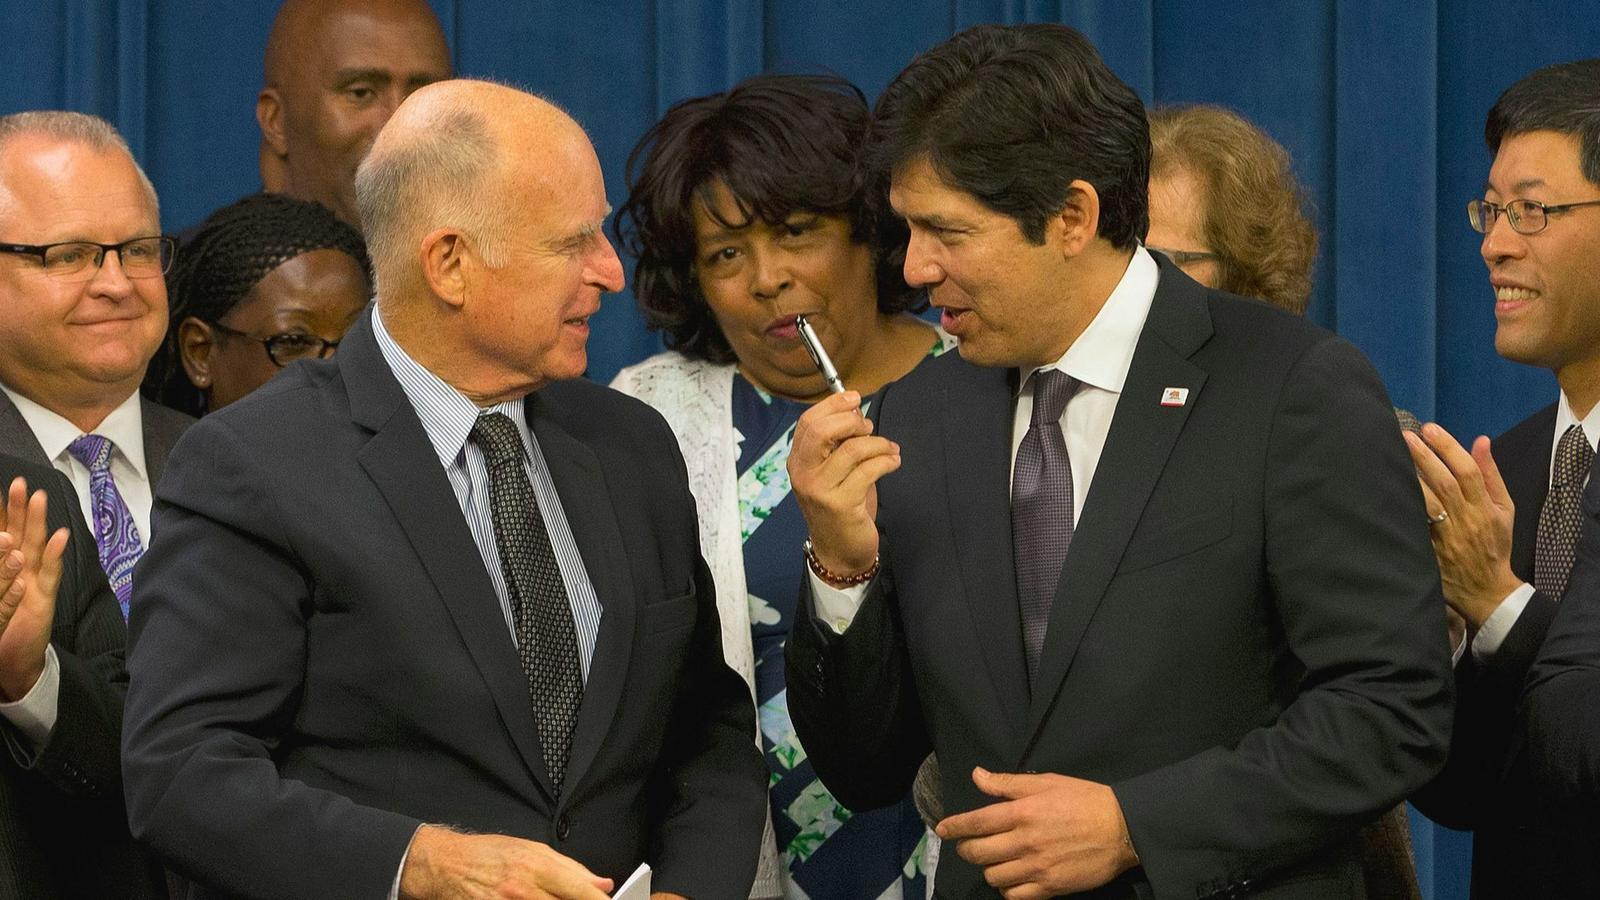 California to Become a Sanctuary State